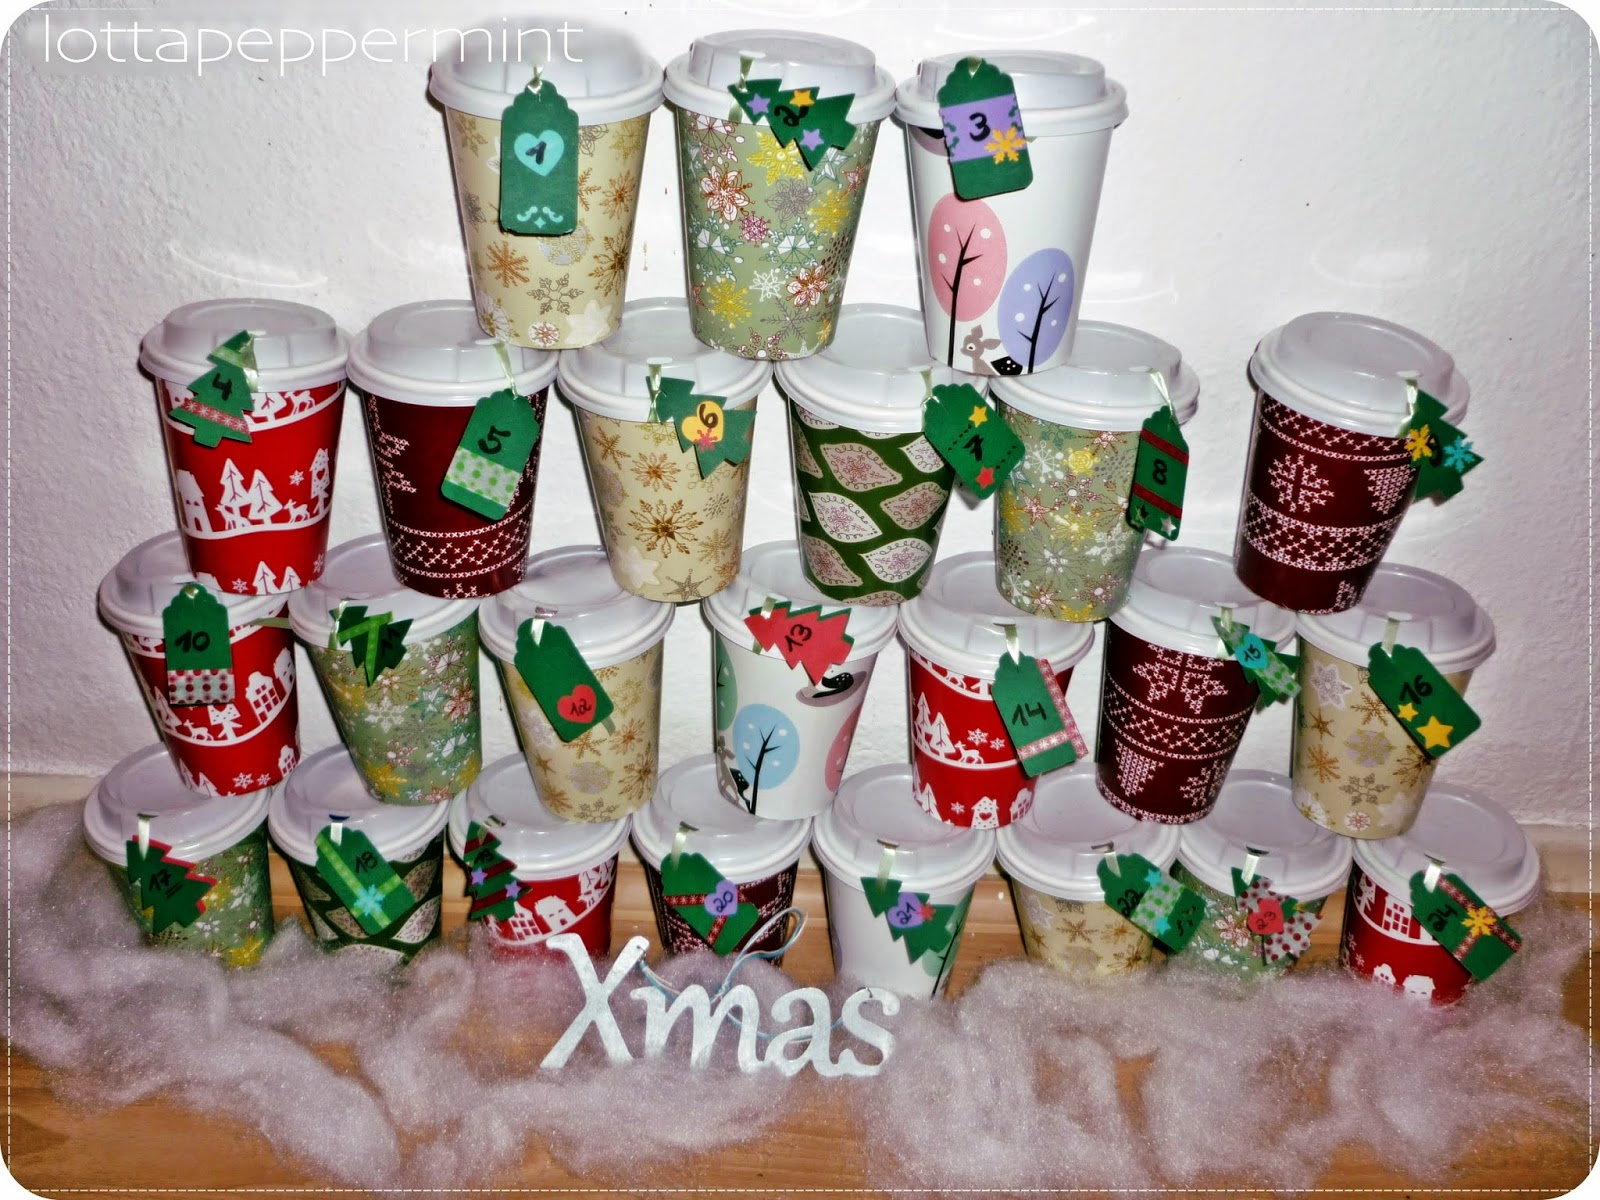 lottapeppermint diy adventskalender aus coffee to go bechern. Black Bedroom Furniture Sets. Home Design Ideas